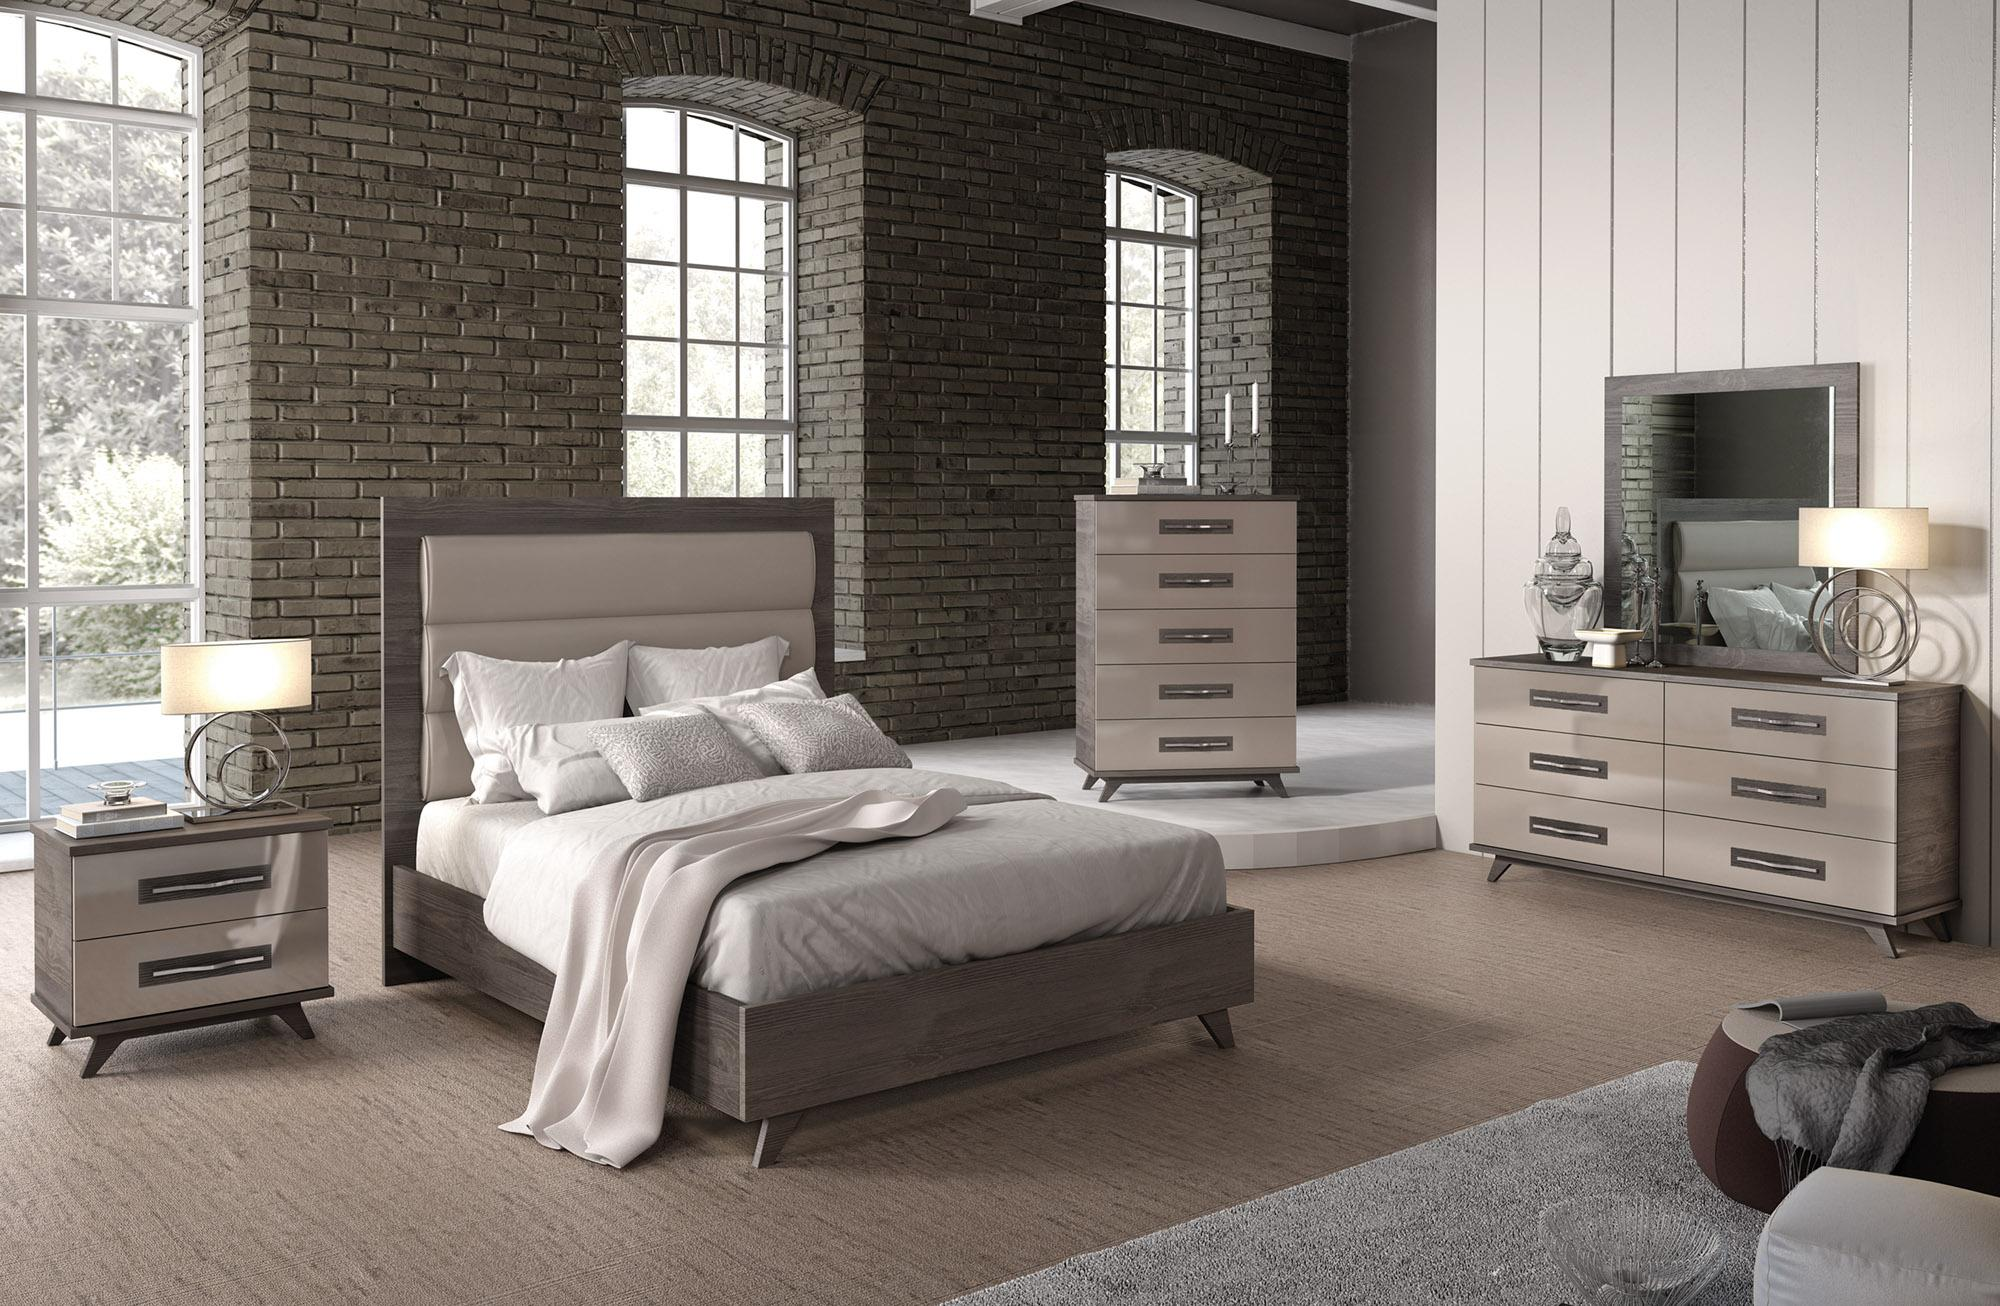 Made in italy leather luxury contemporary furniture set los angeles california esf italian for Grey wood bedroom furniture set